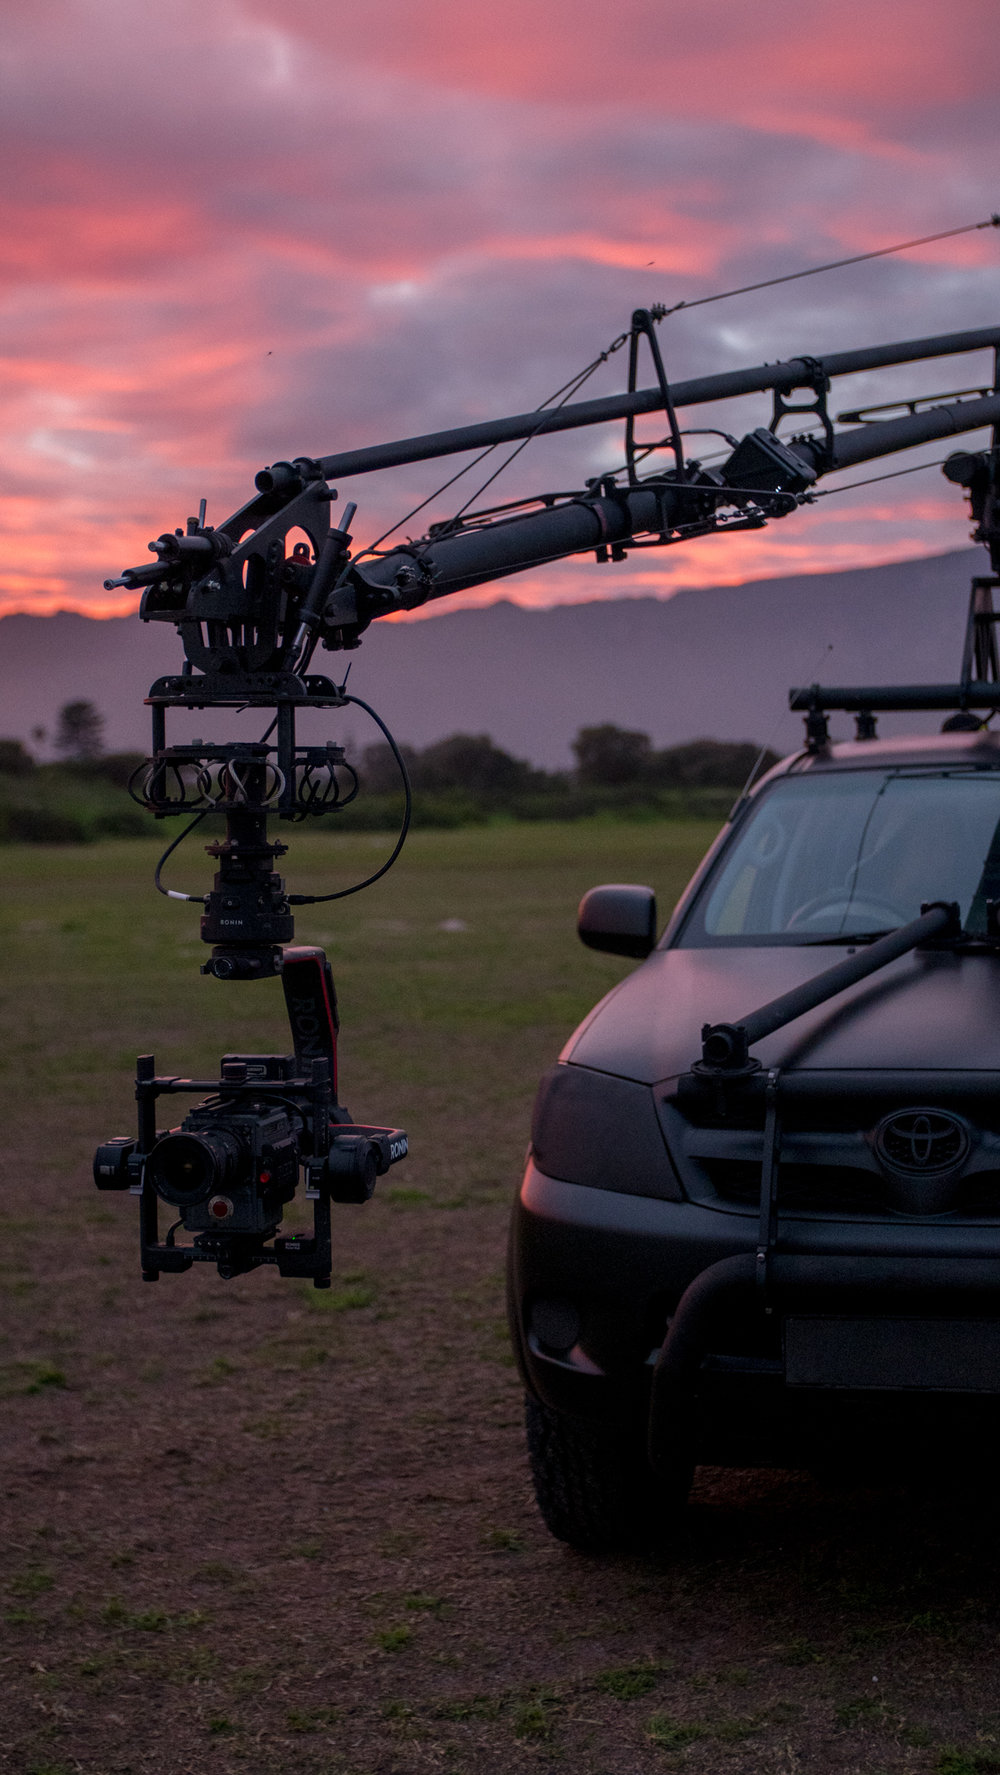 Arm specs   - Fully wireless remote controlReach from fulcrum: 2.5mFulcrum from ground: 2.7mHeight from ground to camera 5.2mLength of boom: 4.27mBoom rotation: 360° Speed: 6 sec/360° Operational angle: ±45° Max lens height front back: 4.6mCamera payload capacity: 9kgHeight clearance: 3.3mWeight: 180kg4 person wireless communication devices5 wired HD video taps5051 aluminium marine gradeTrained remote arm operator